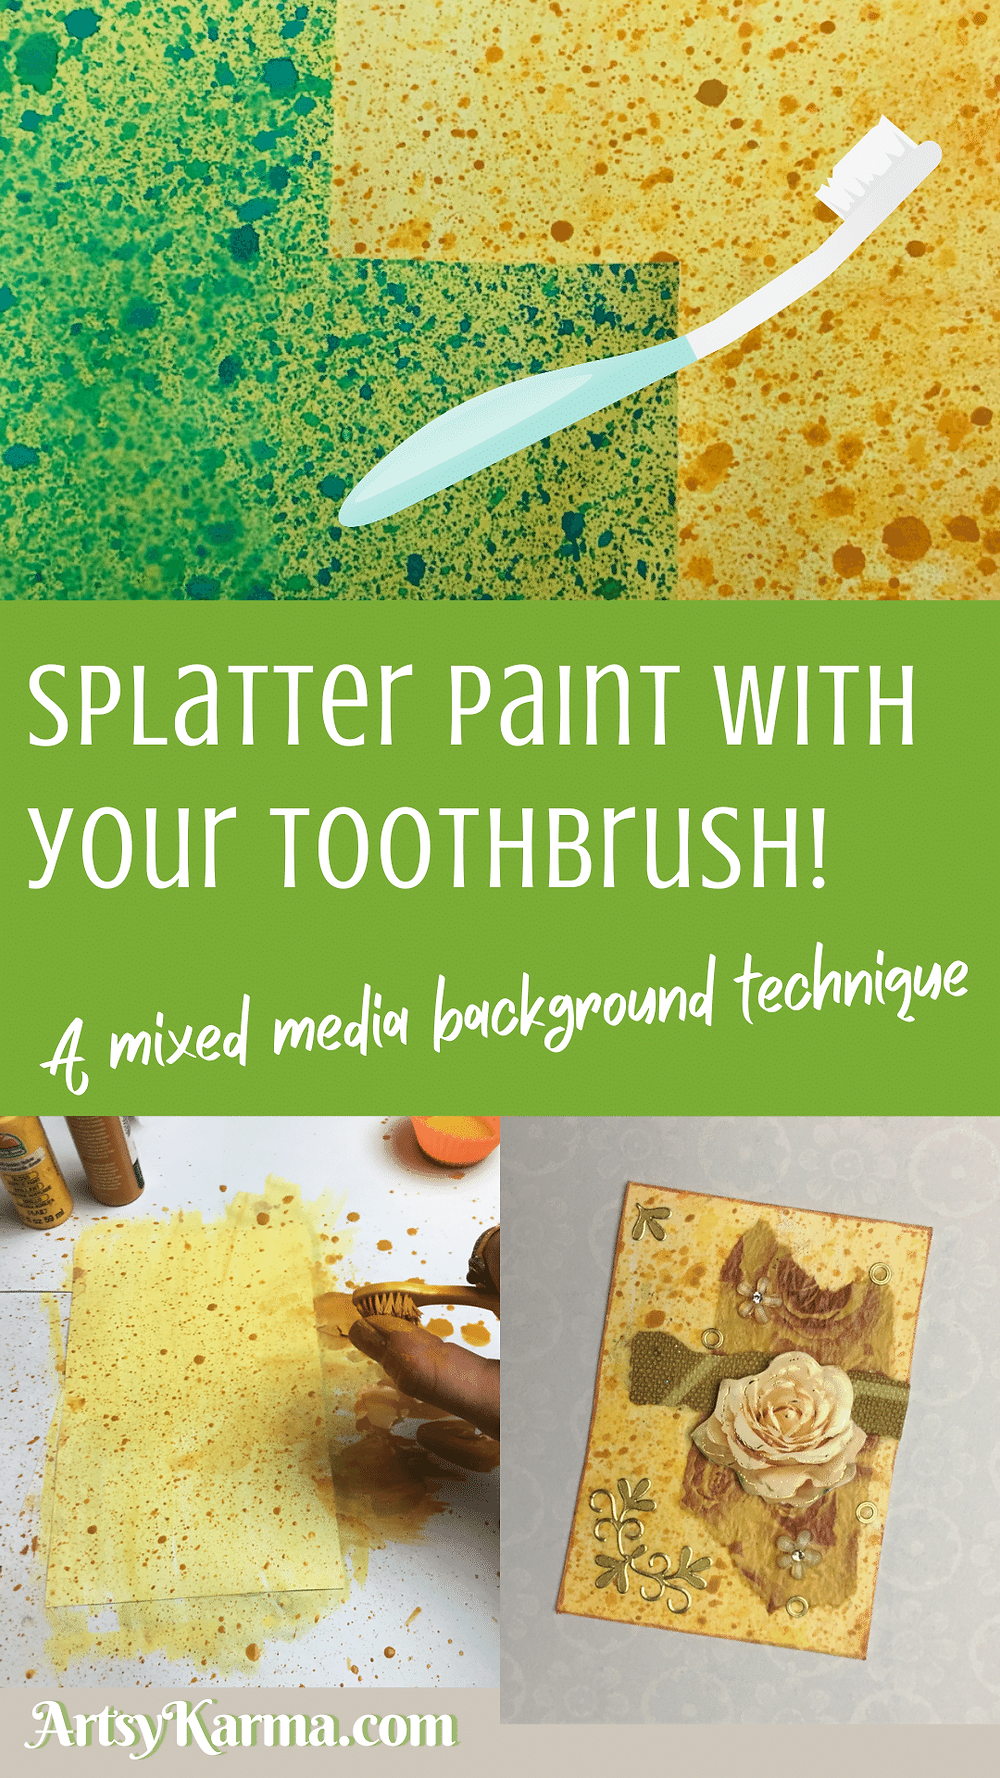 Splatter paint with your toothbrush tutorial